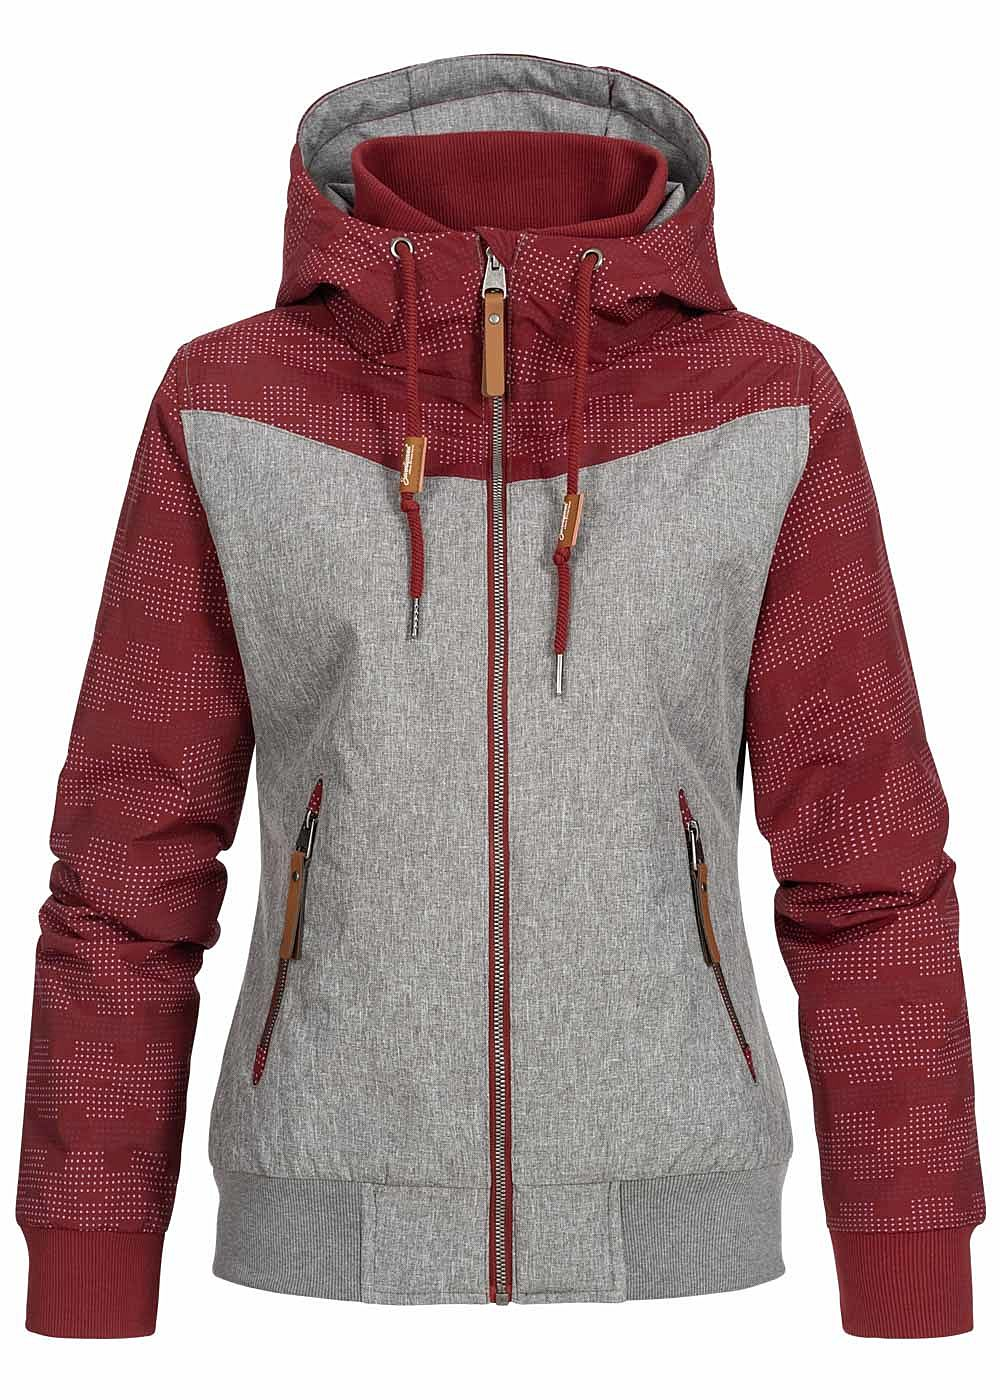 Seventyseven Lifestyle Damen Hooded Melange Jacket 2-Pockets bordeaux rot - Art.-Nr.: 19108017-XXL-BO